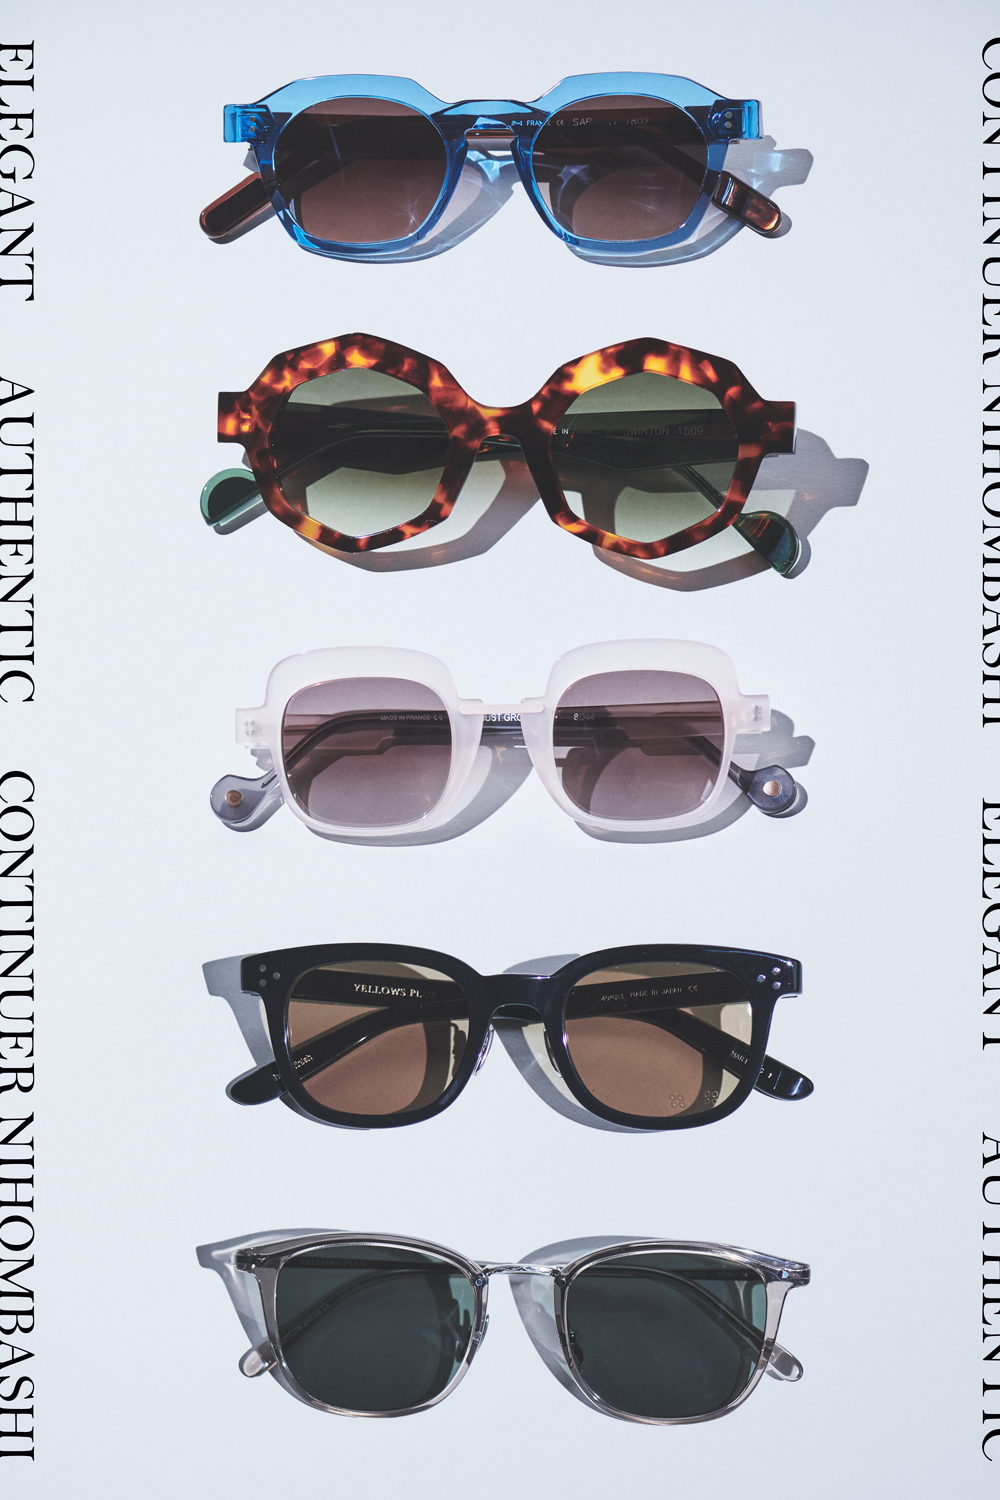 SUNGLASSES COLLECTION|NIHOMBASHI